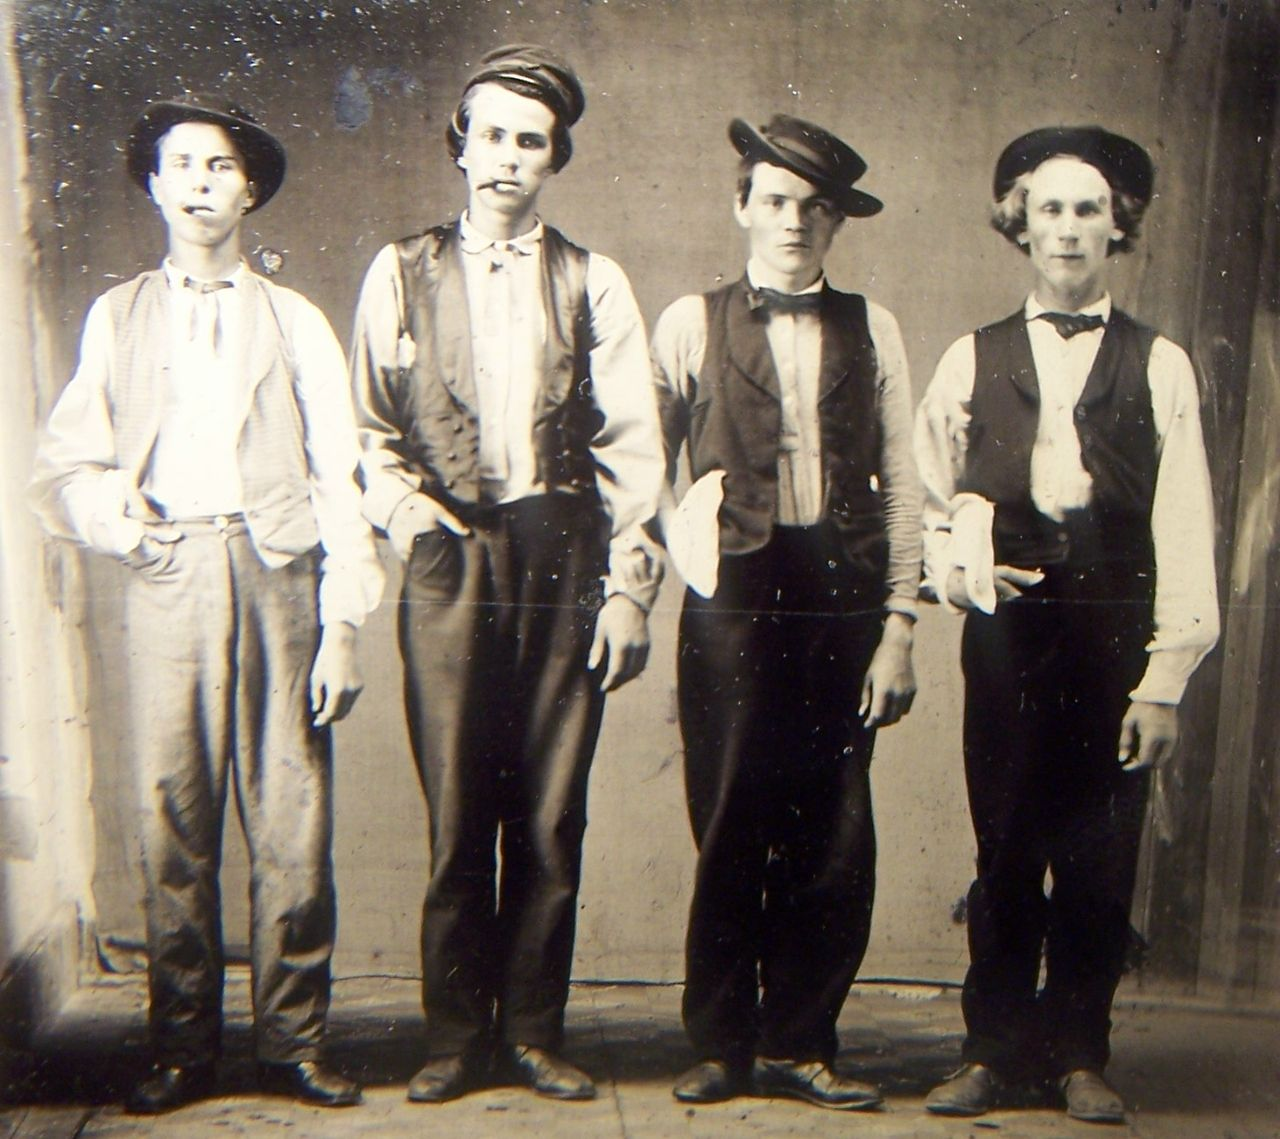 A photo believed to be Billy the kid, Doc Holliday, Jesse